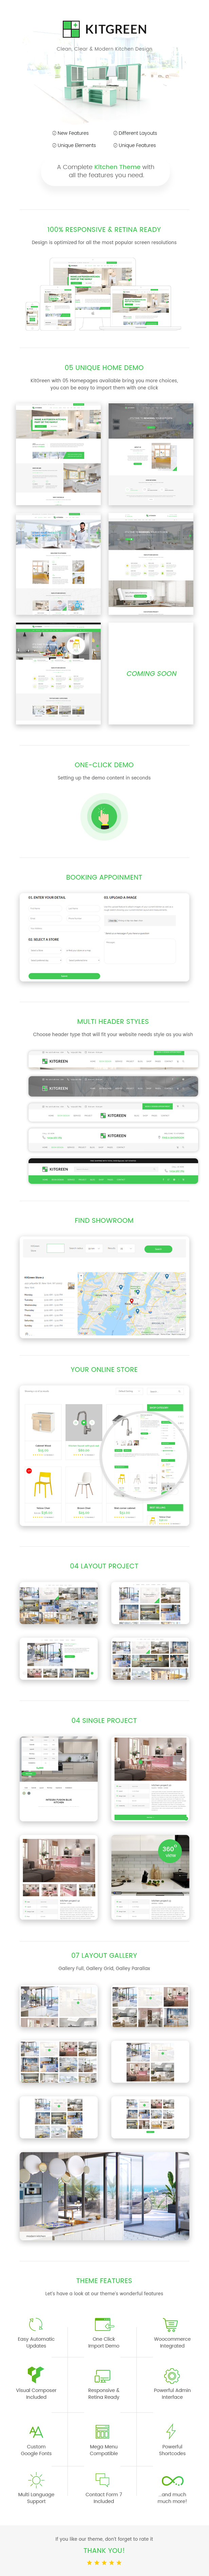 Organiko - Farm & Food Business WordPress Theme